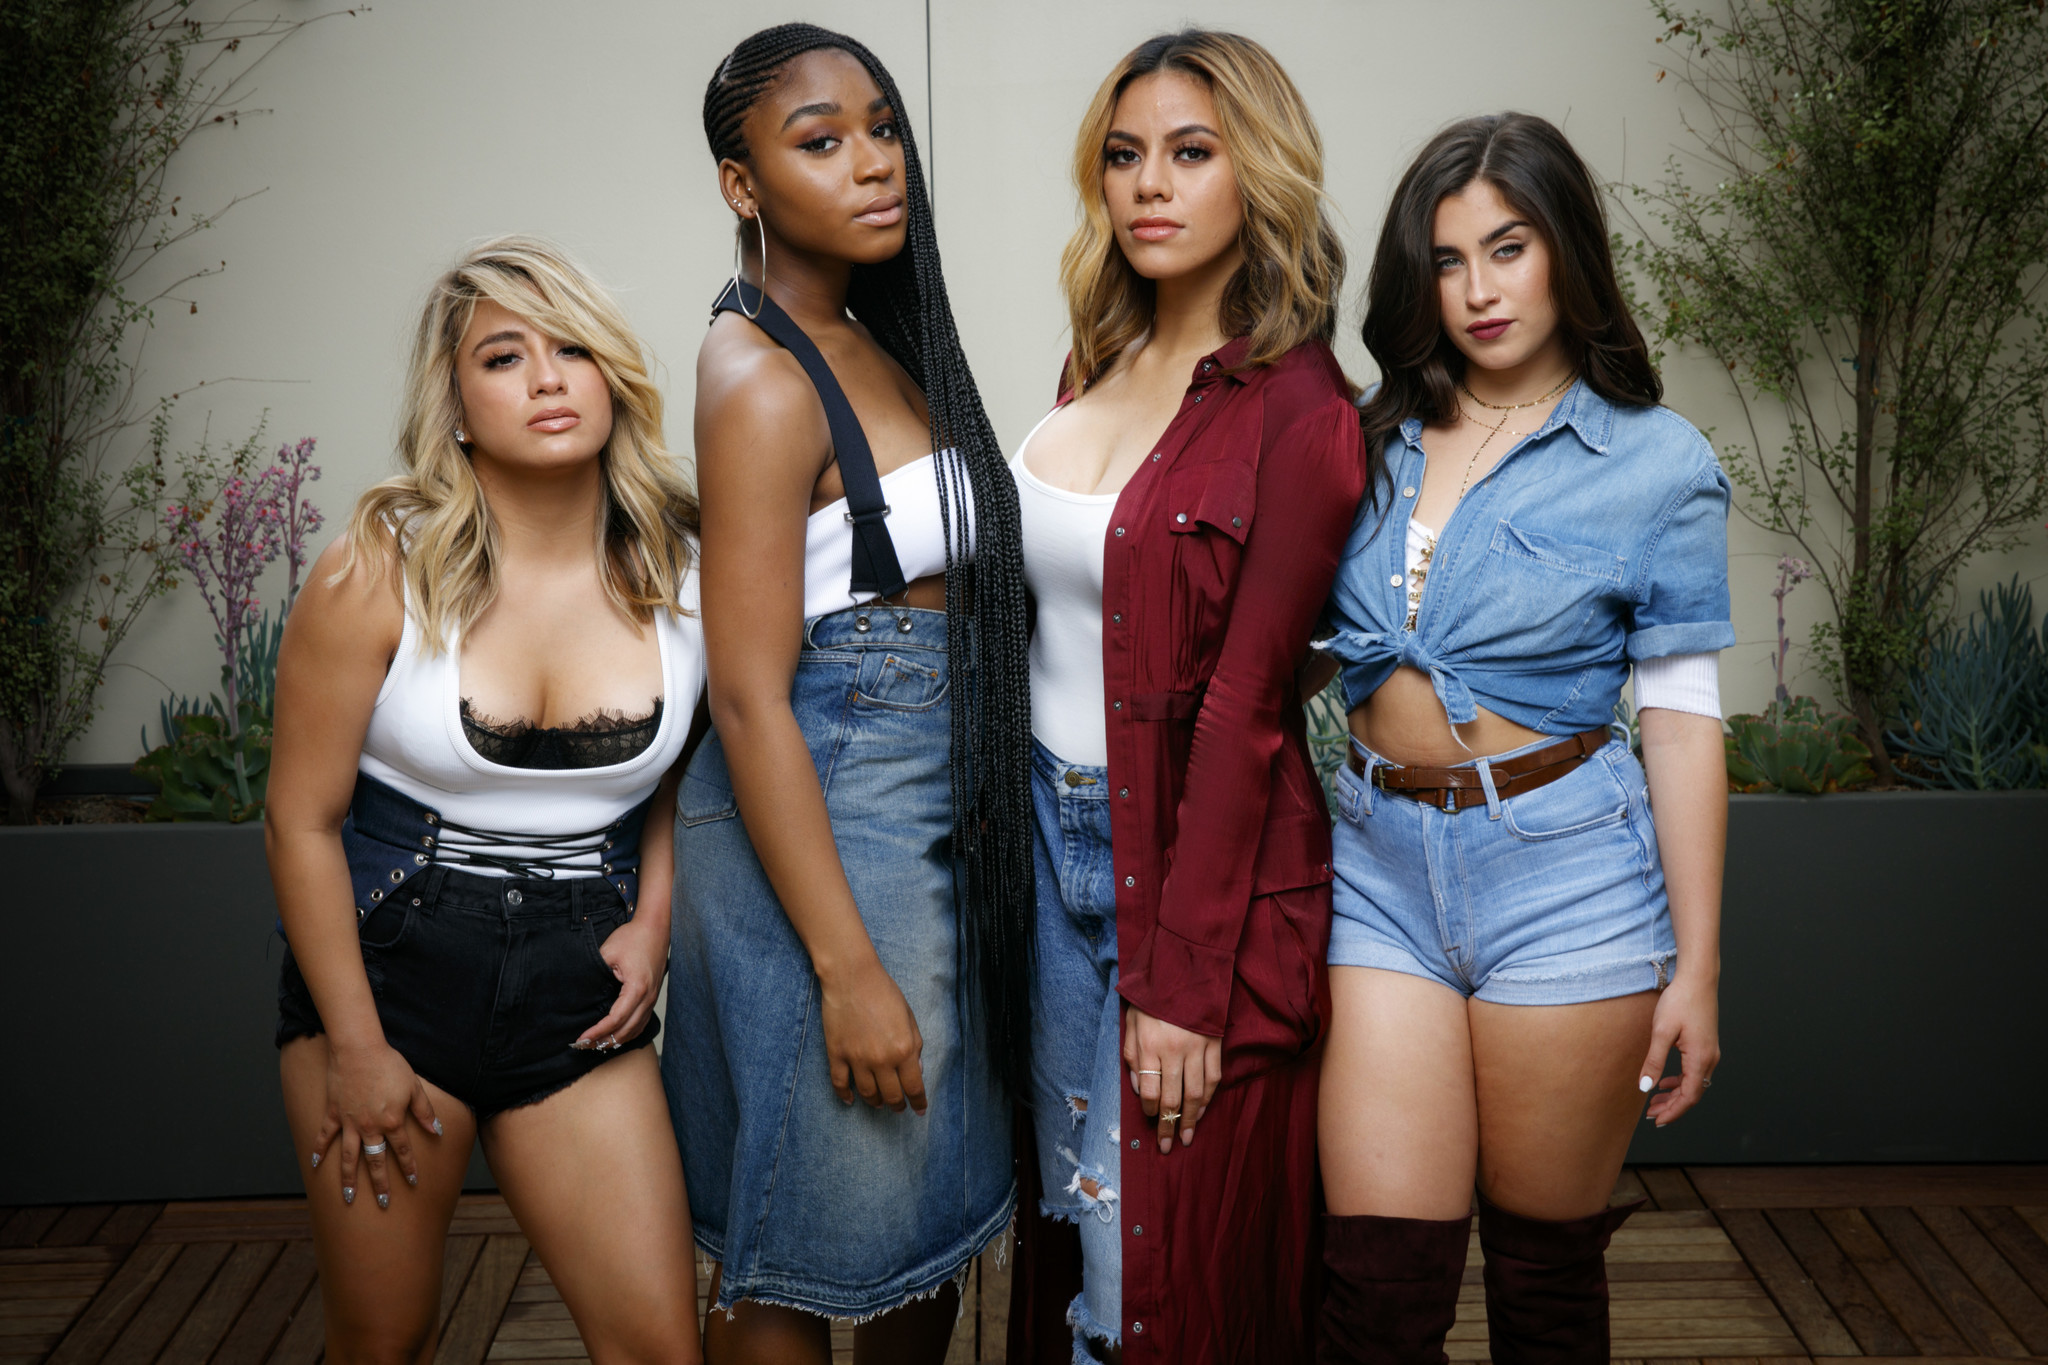 Fifth Harmony breaks down its 'passionate' new album track